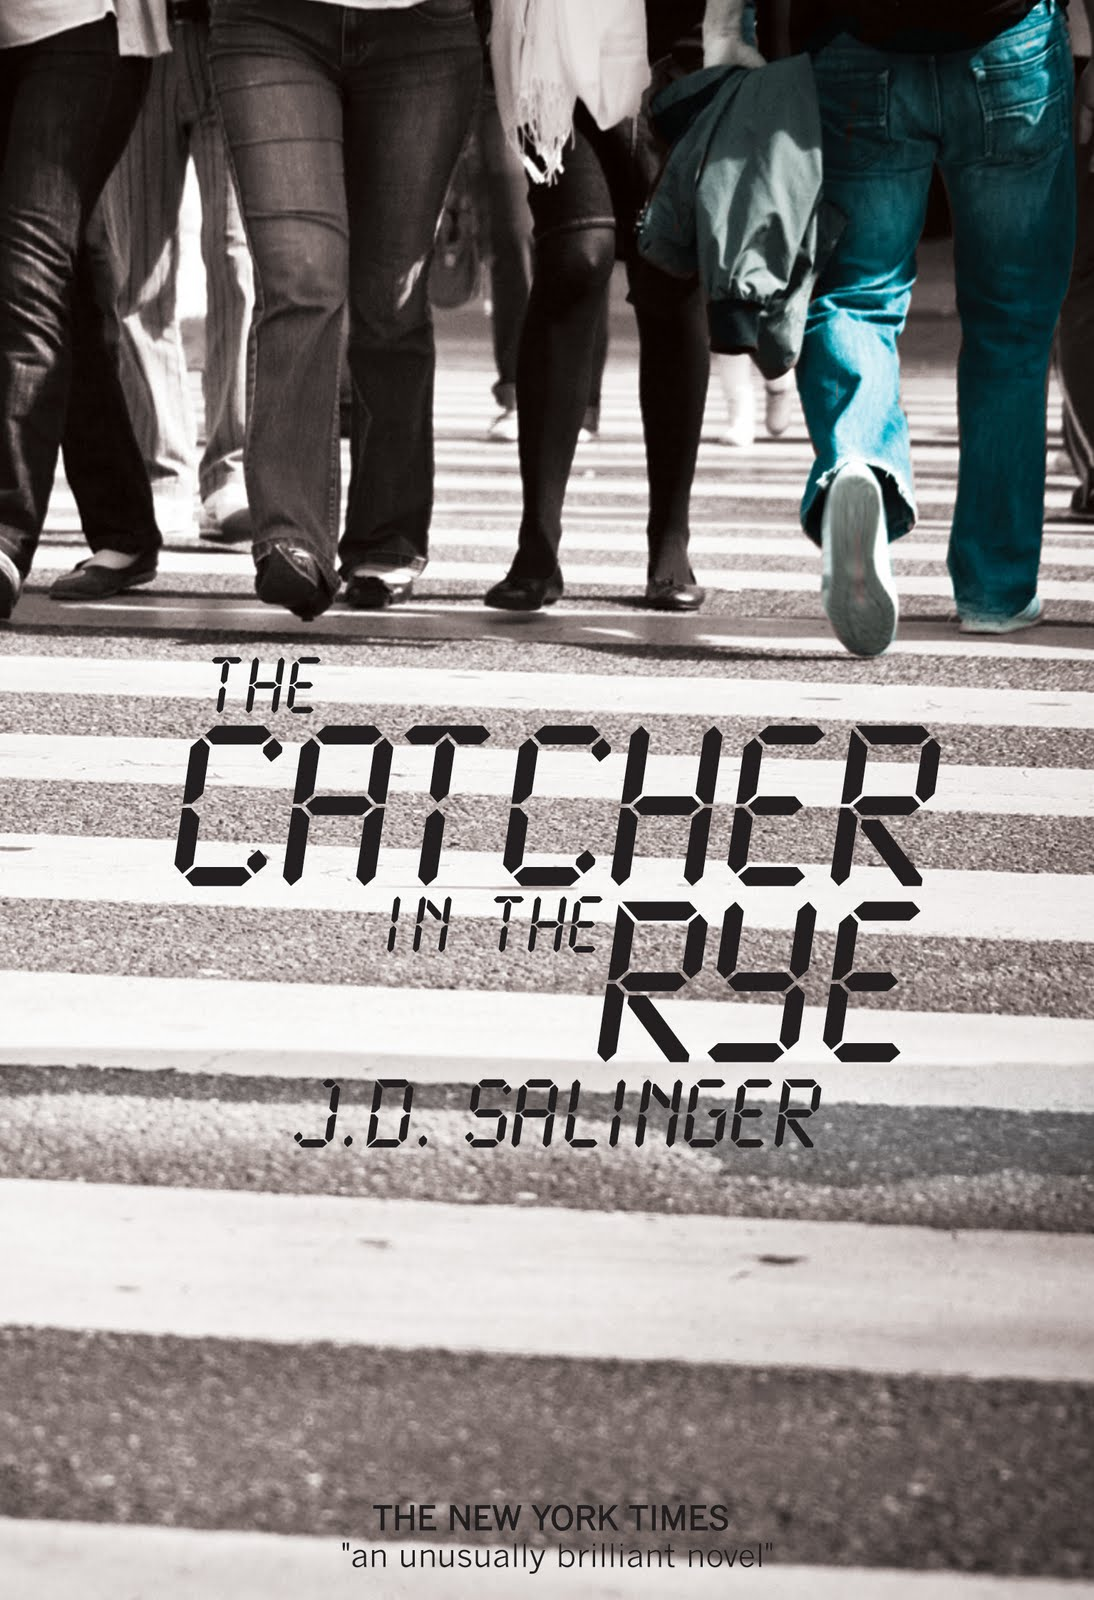 a plot summary of jerome salingers novel catcher in the rye His seminal novel, the catcher in the rye, is an indelible depiction of  born  jerome david salinger on new year's day 1919, salinger was of scottish,  the  support of burnett salinger had his short story, 'the young folks',.